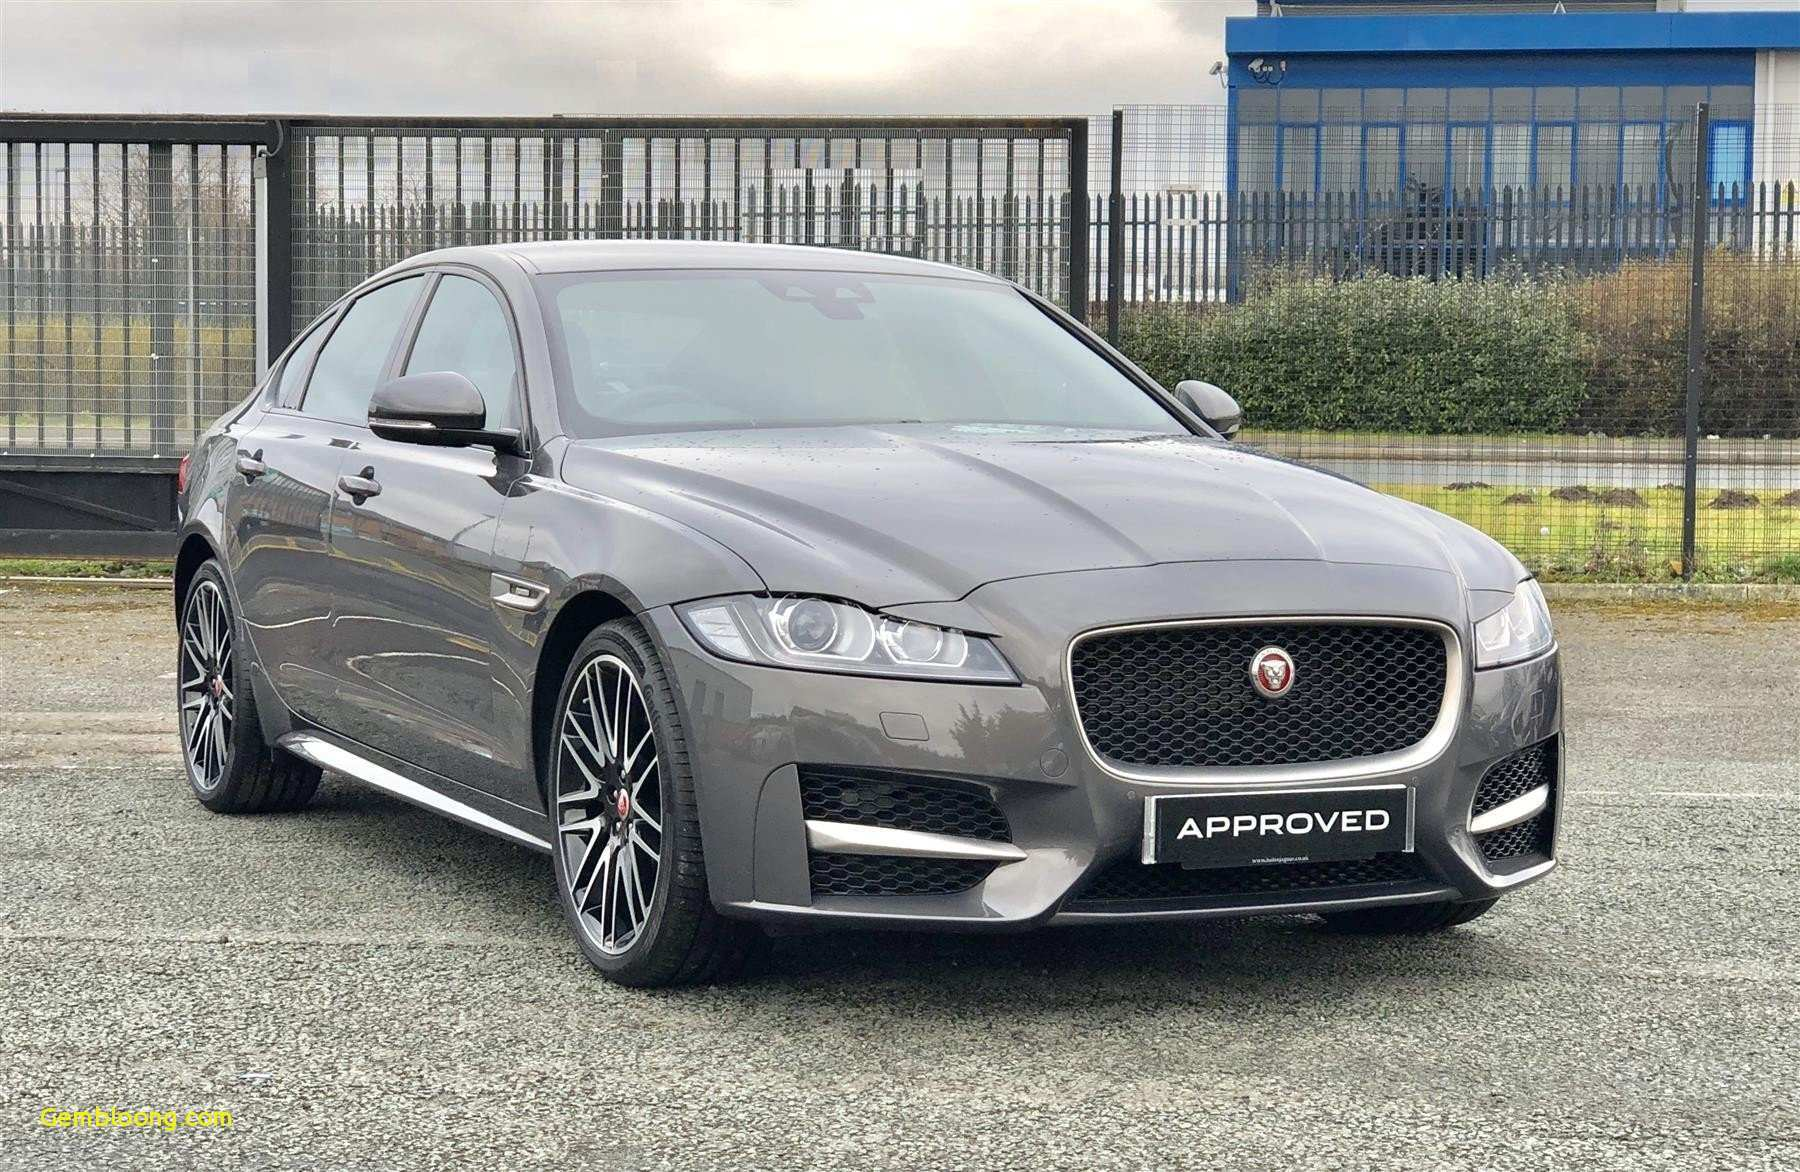 60 All New 2020 Jaguar Station Wagon Price and Review by 2020 Jaguar Station Wagon